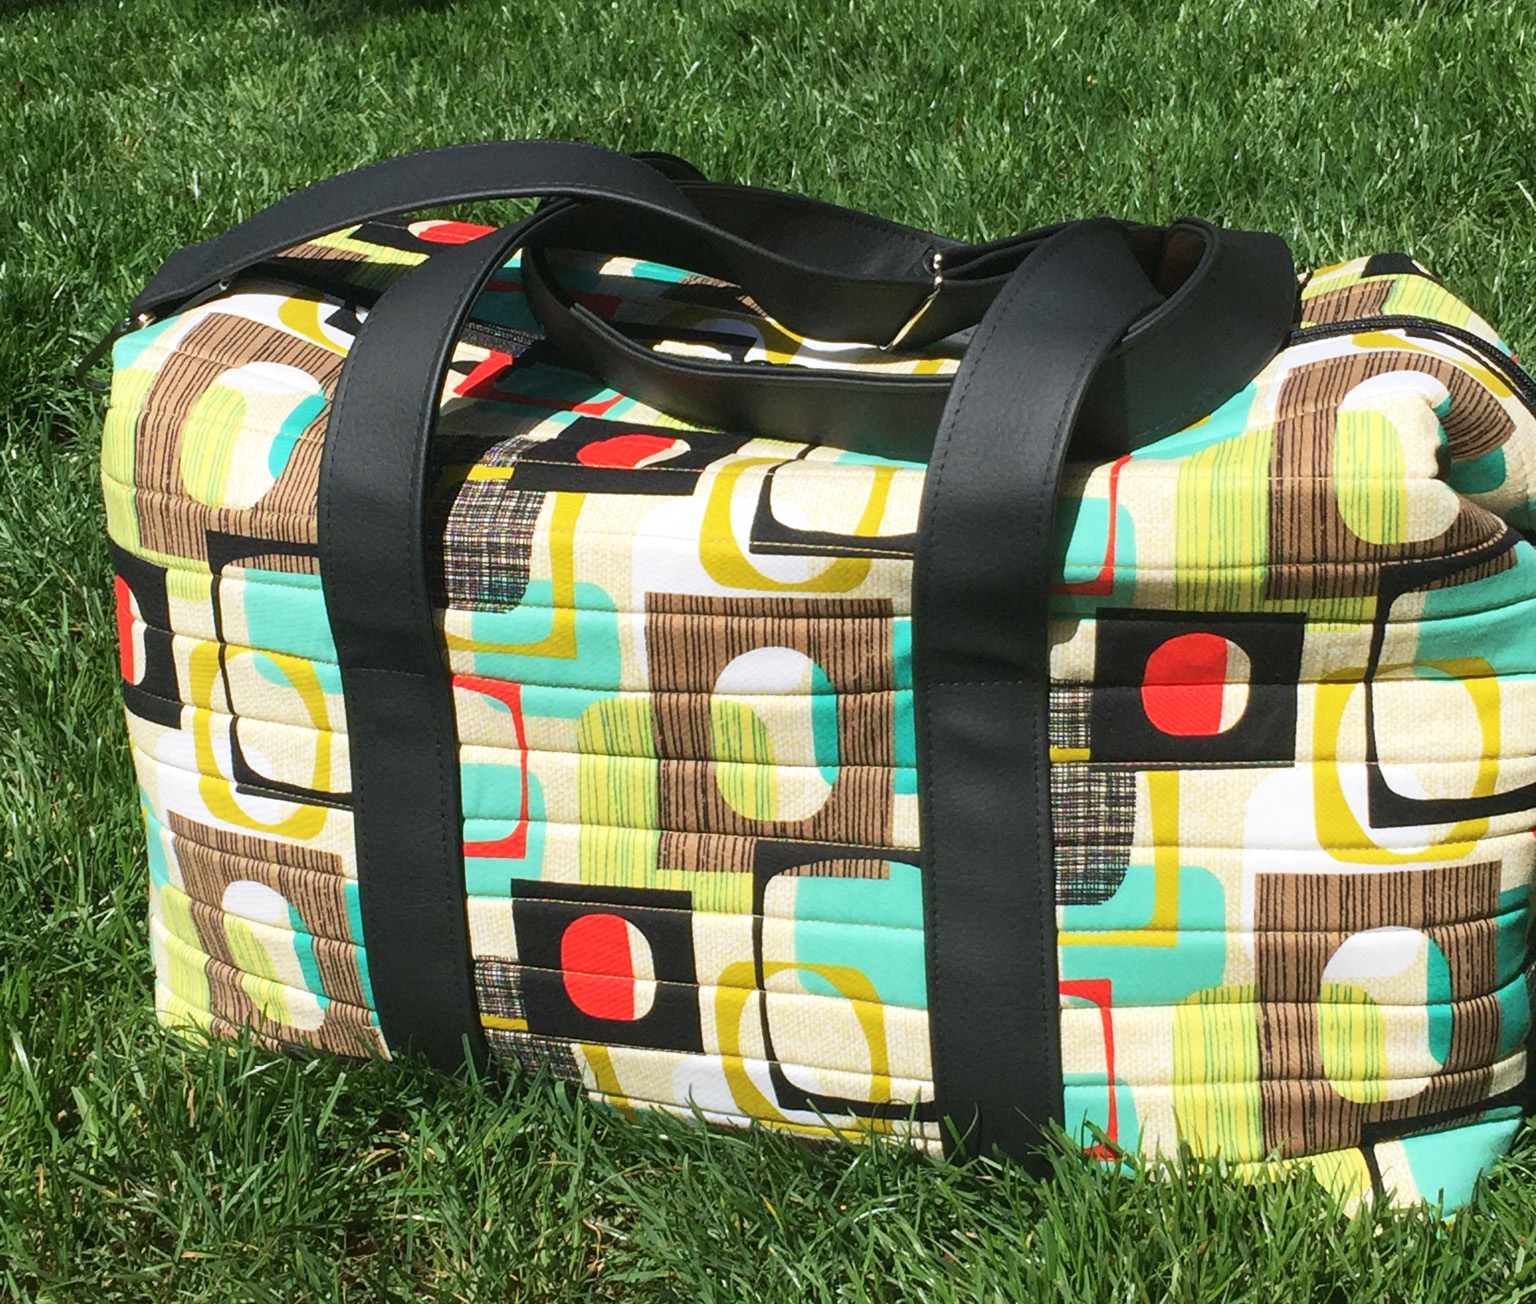 Sew Sweetness Emblem Duffle Bag, sewn by Colleen